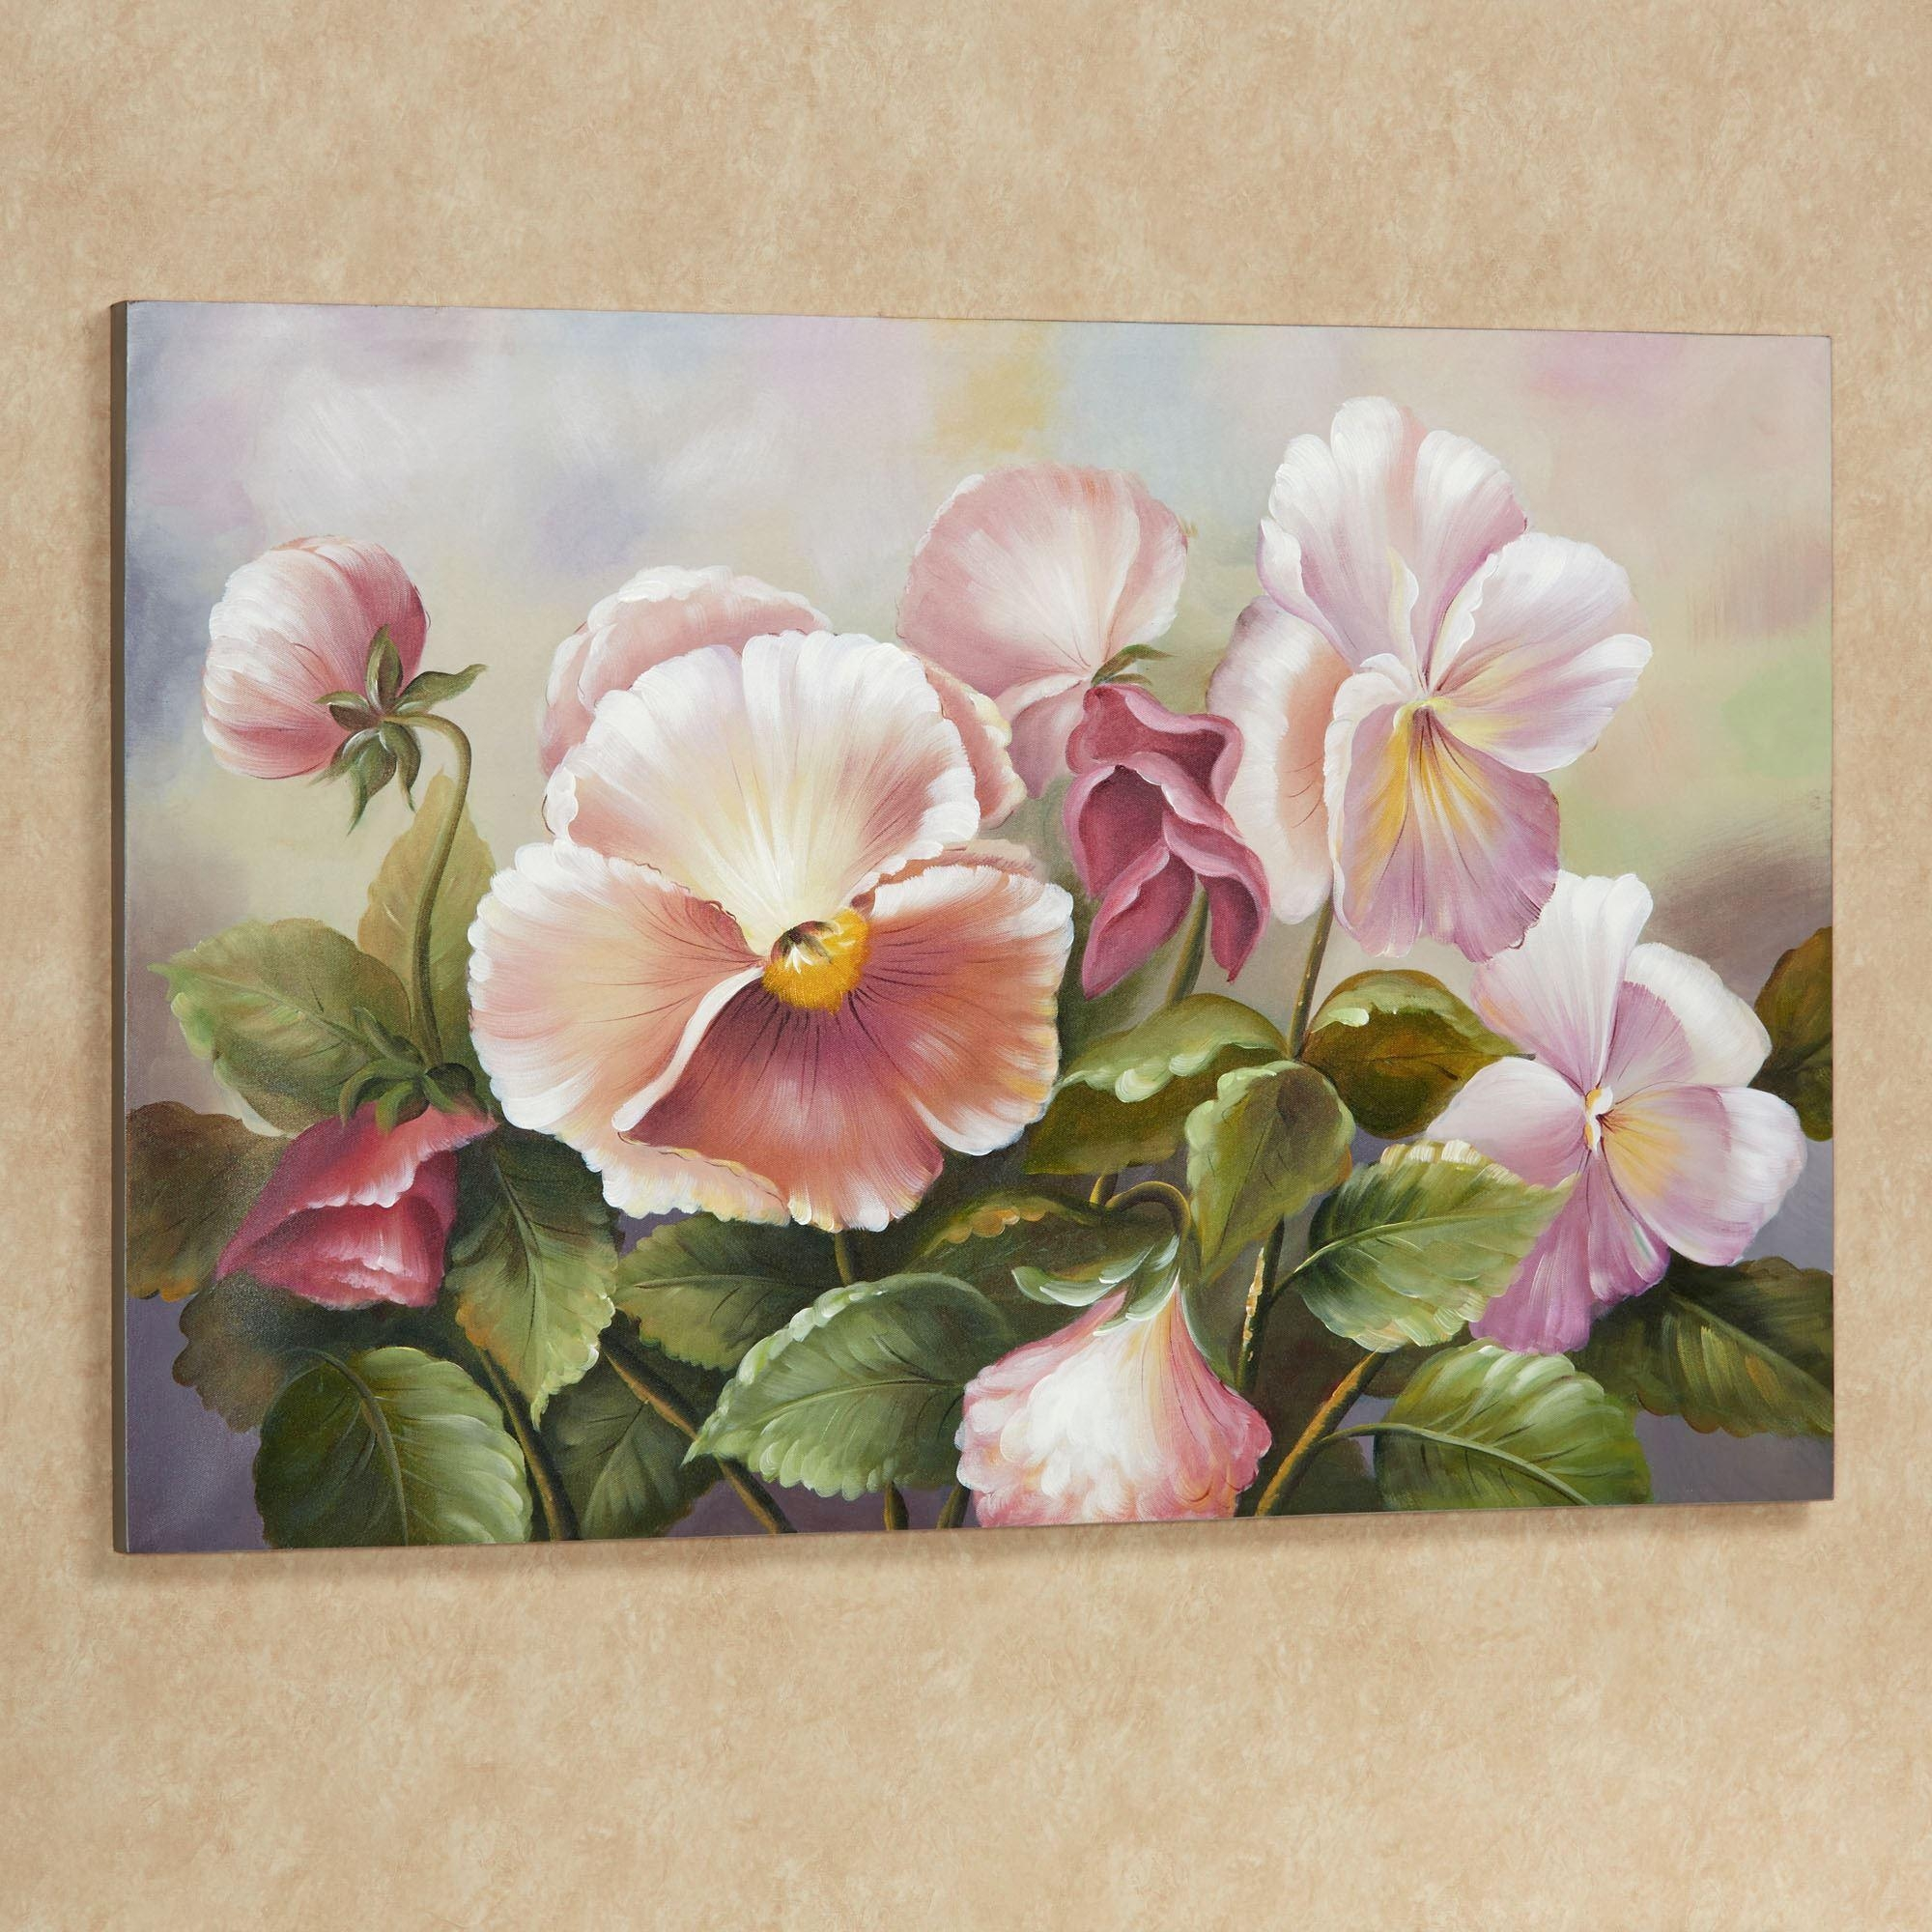 Plenty Of Pansies Floral Canvas Art For Floral Wall Art Canvas (Image 15 of 20)